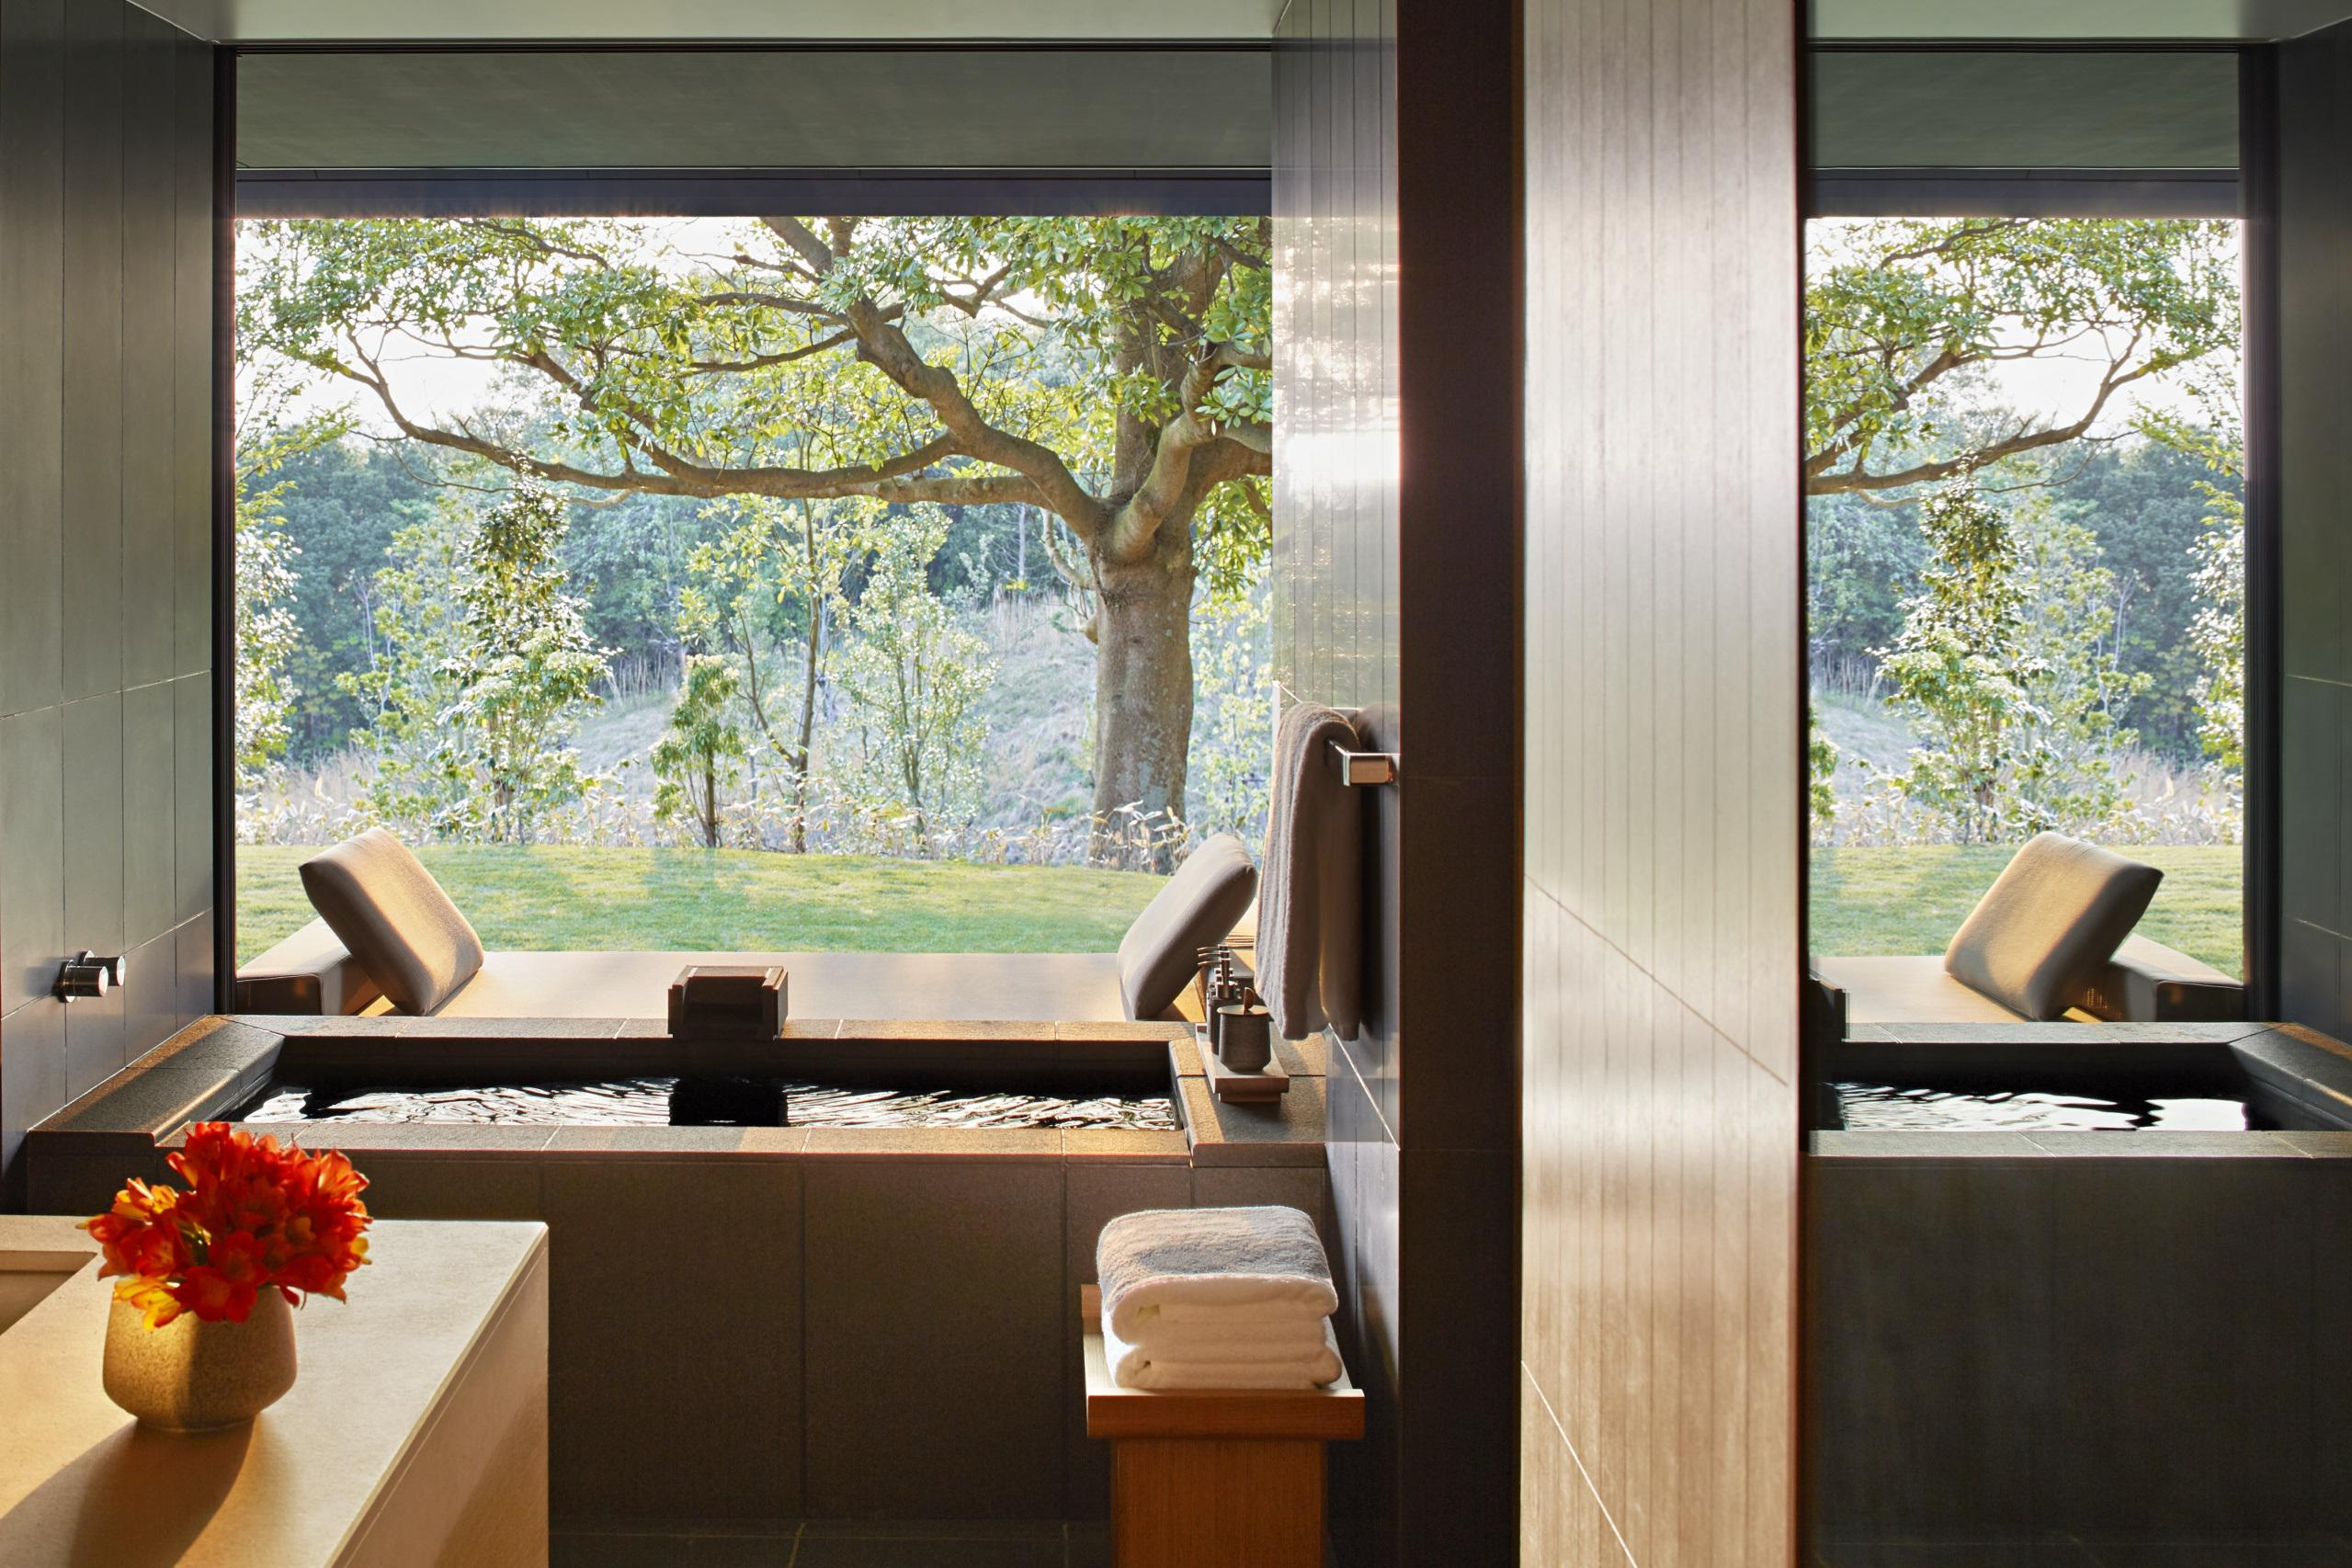 Mori Suite Amanemu bathroom.jpg